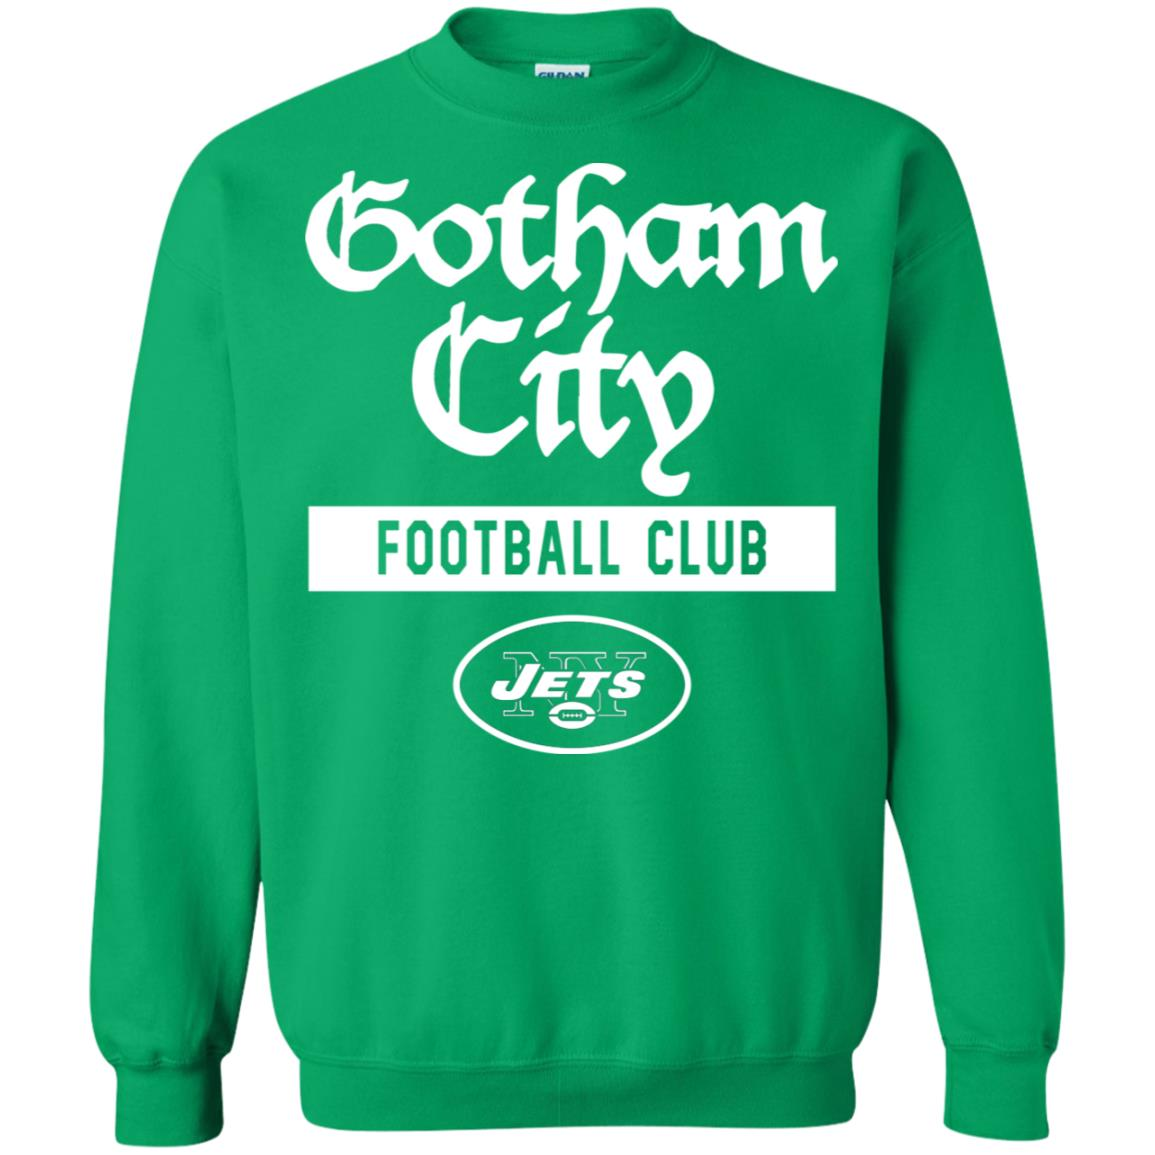 3360cfcd9 New York Jets Gotham City shirt - image 4217 510x510